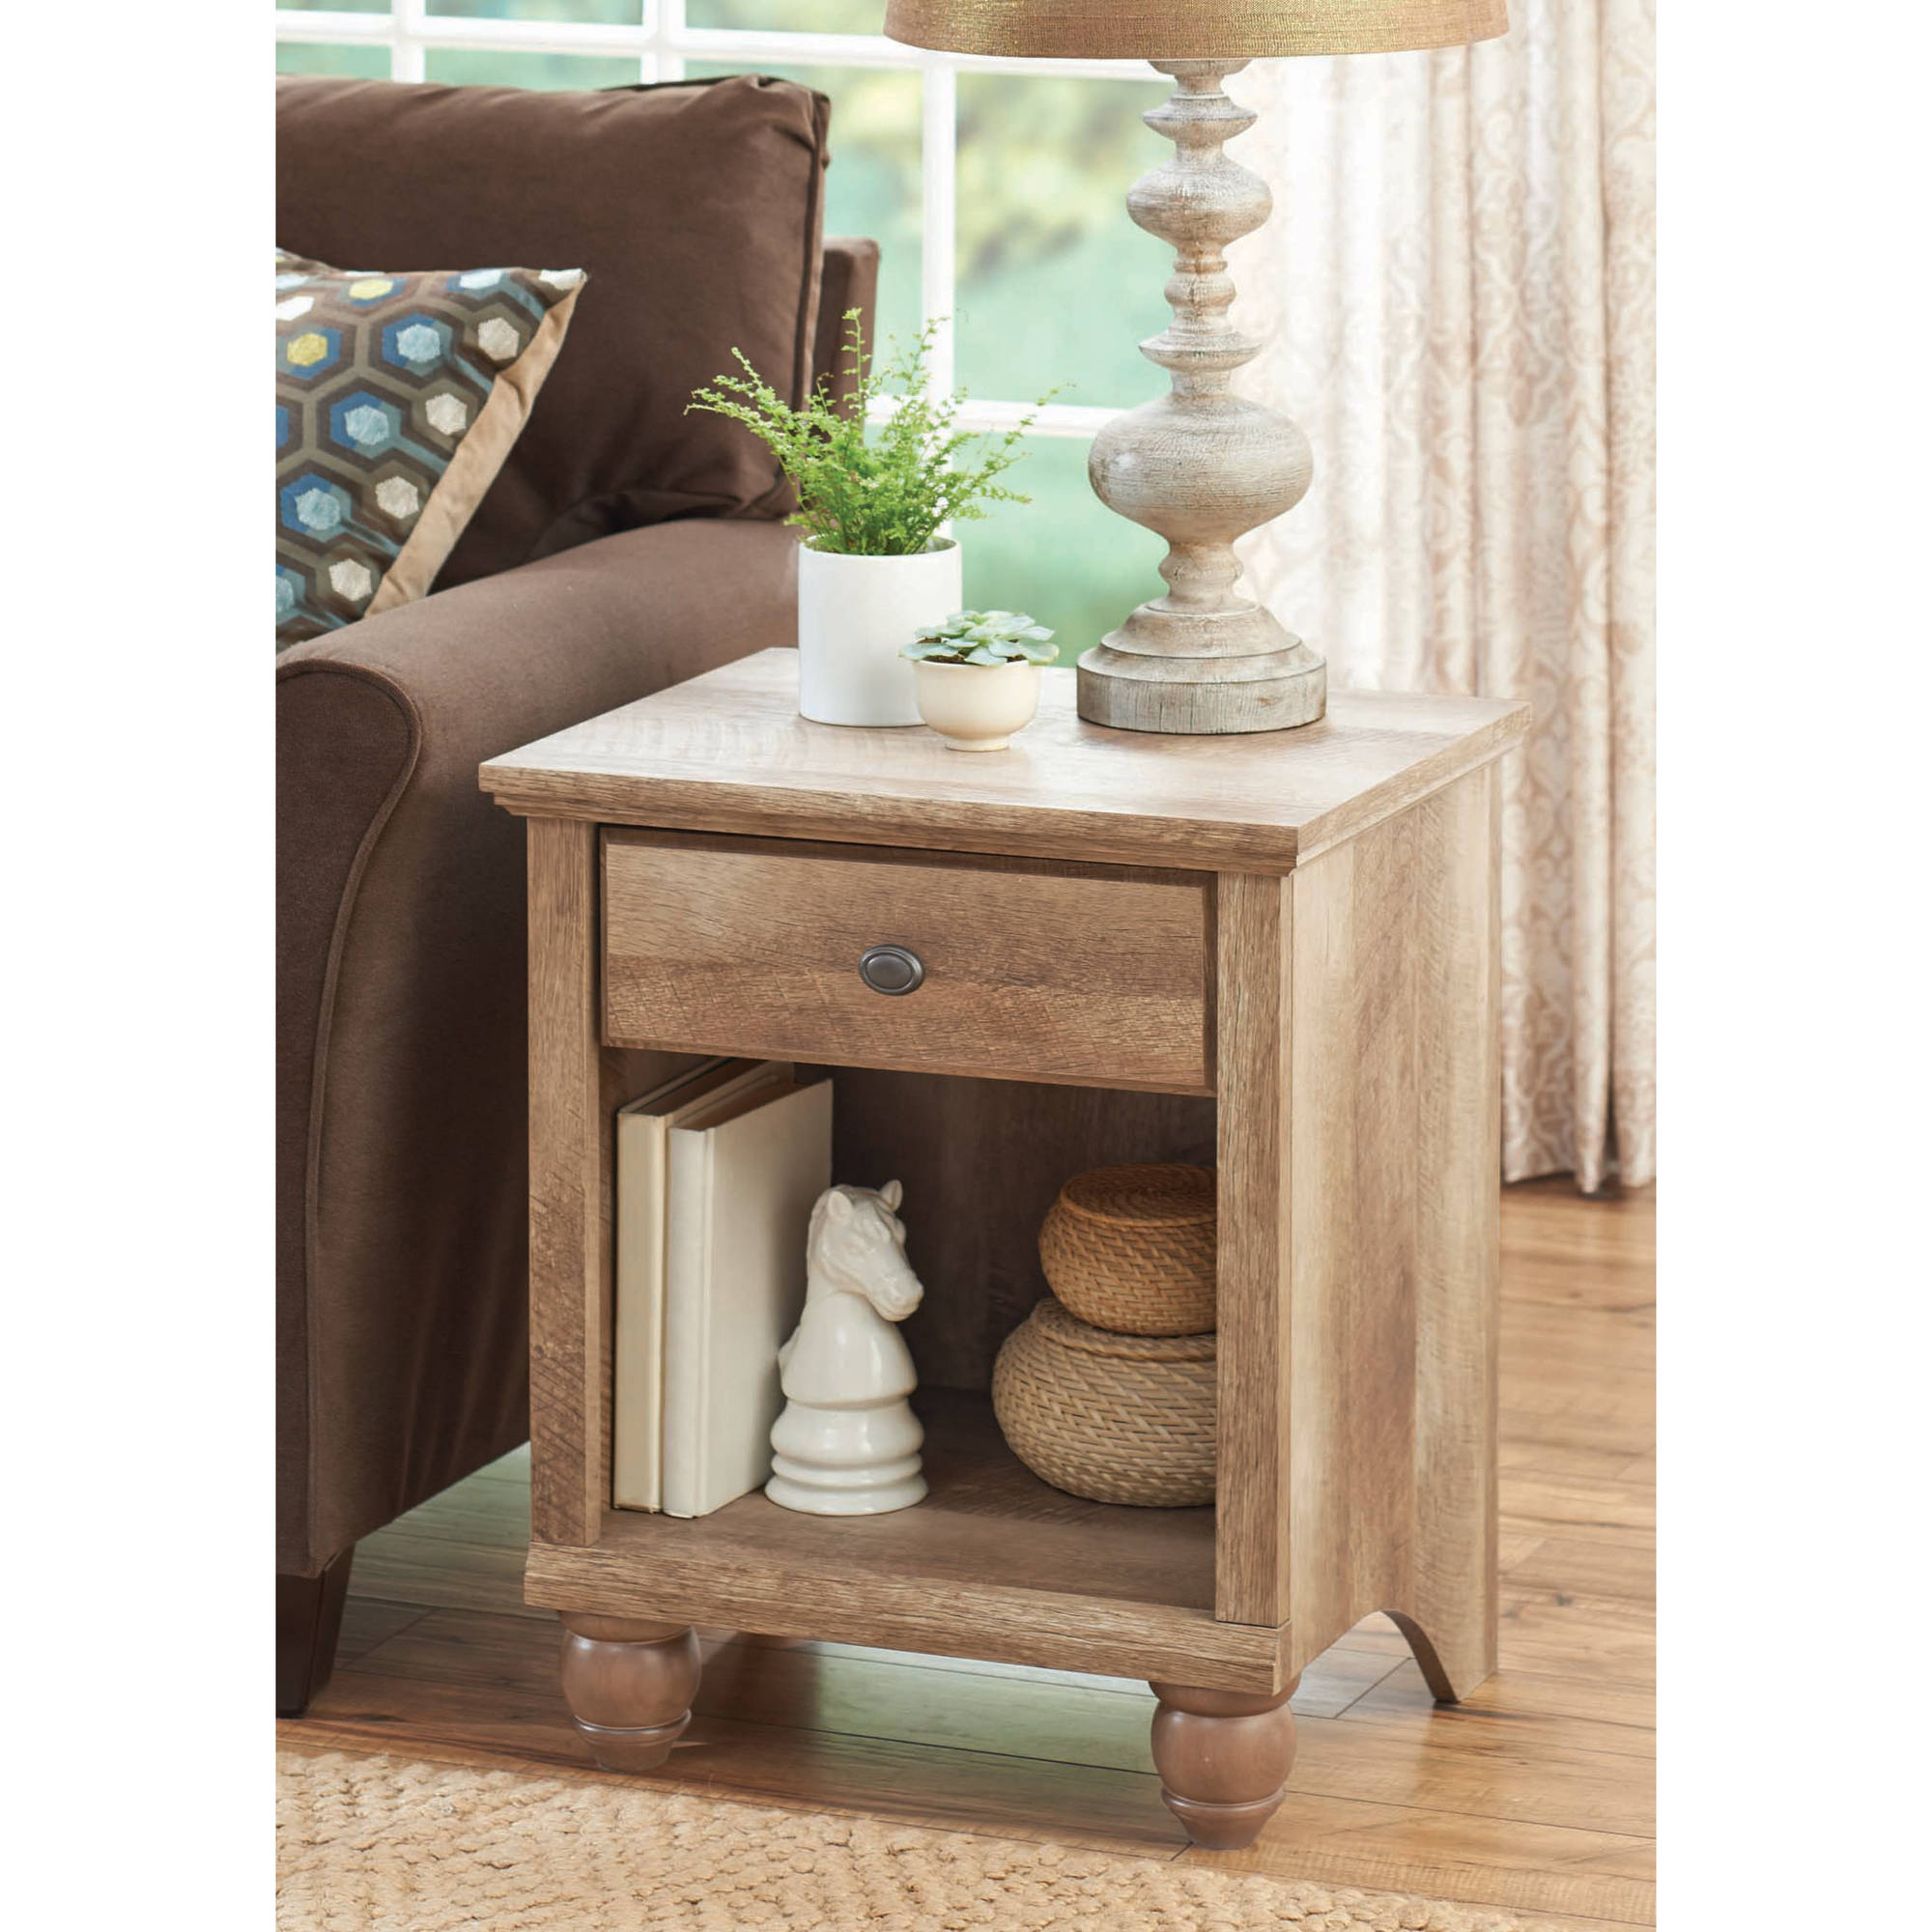 better homes gardens crossmill accent table weathered finish hadley with drawer brass hairpin legs cordless touch lamps small modern lamp farmhouse dining set argos coffee shabby